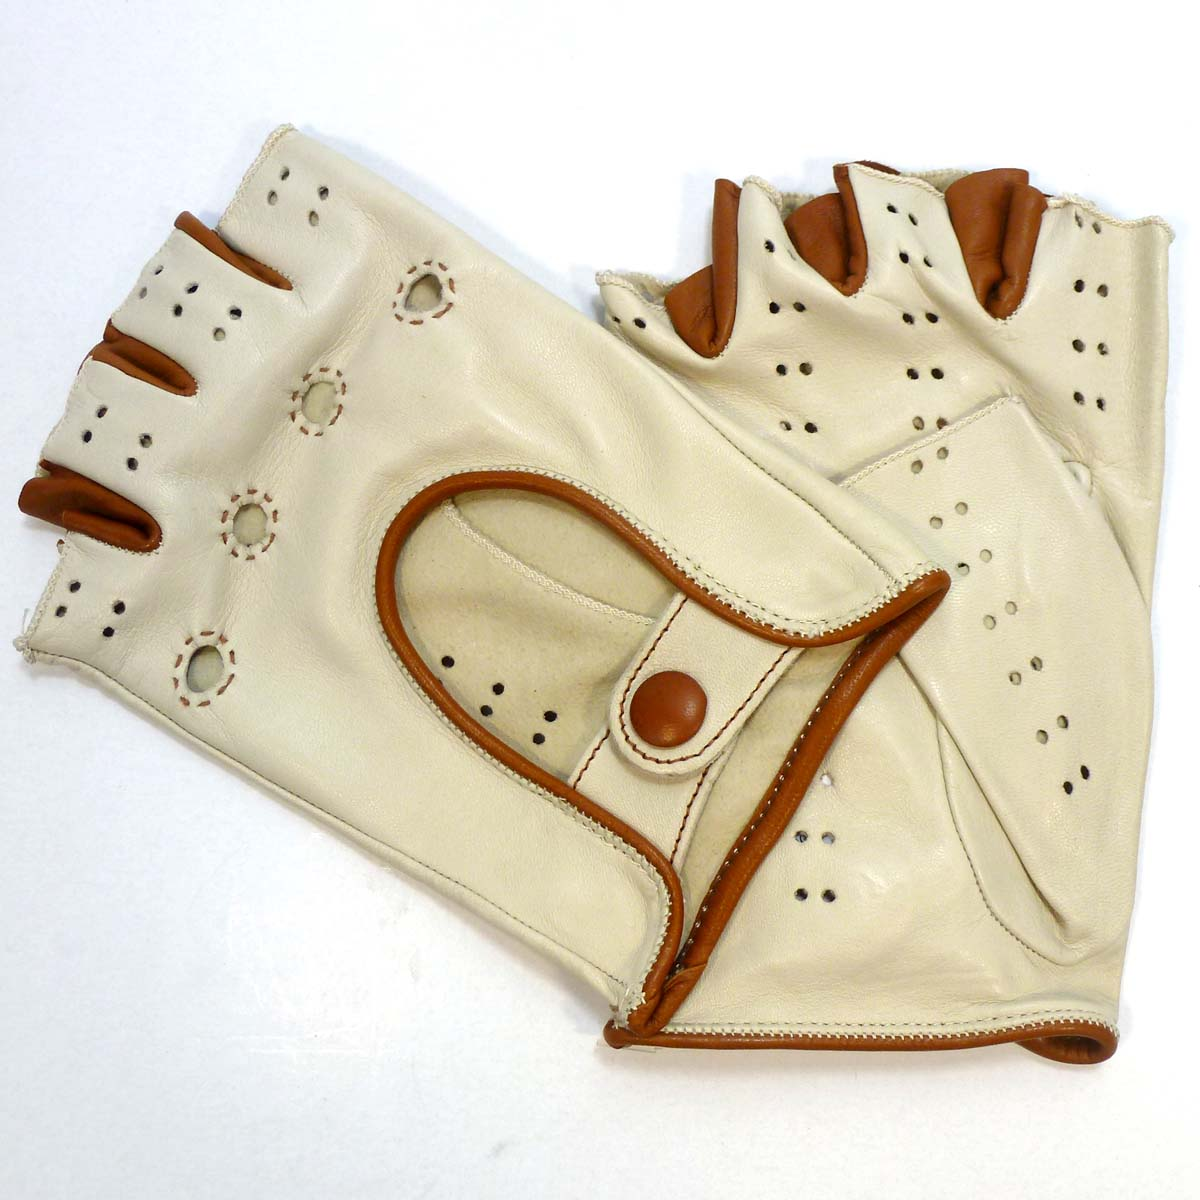 8K32uDT Fingerless driving Glove by Bottega Fiorentina